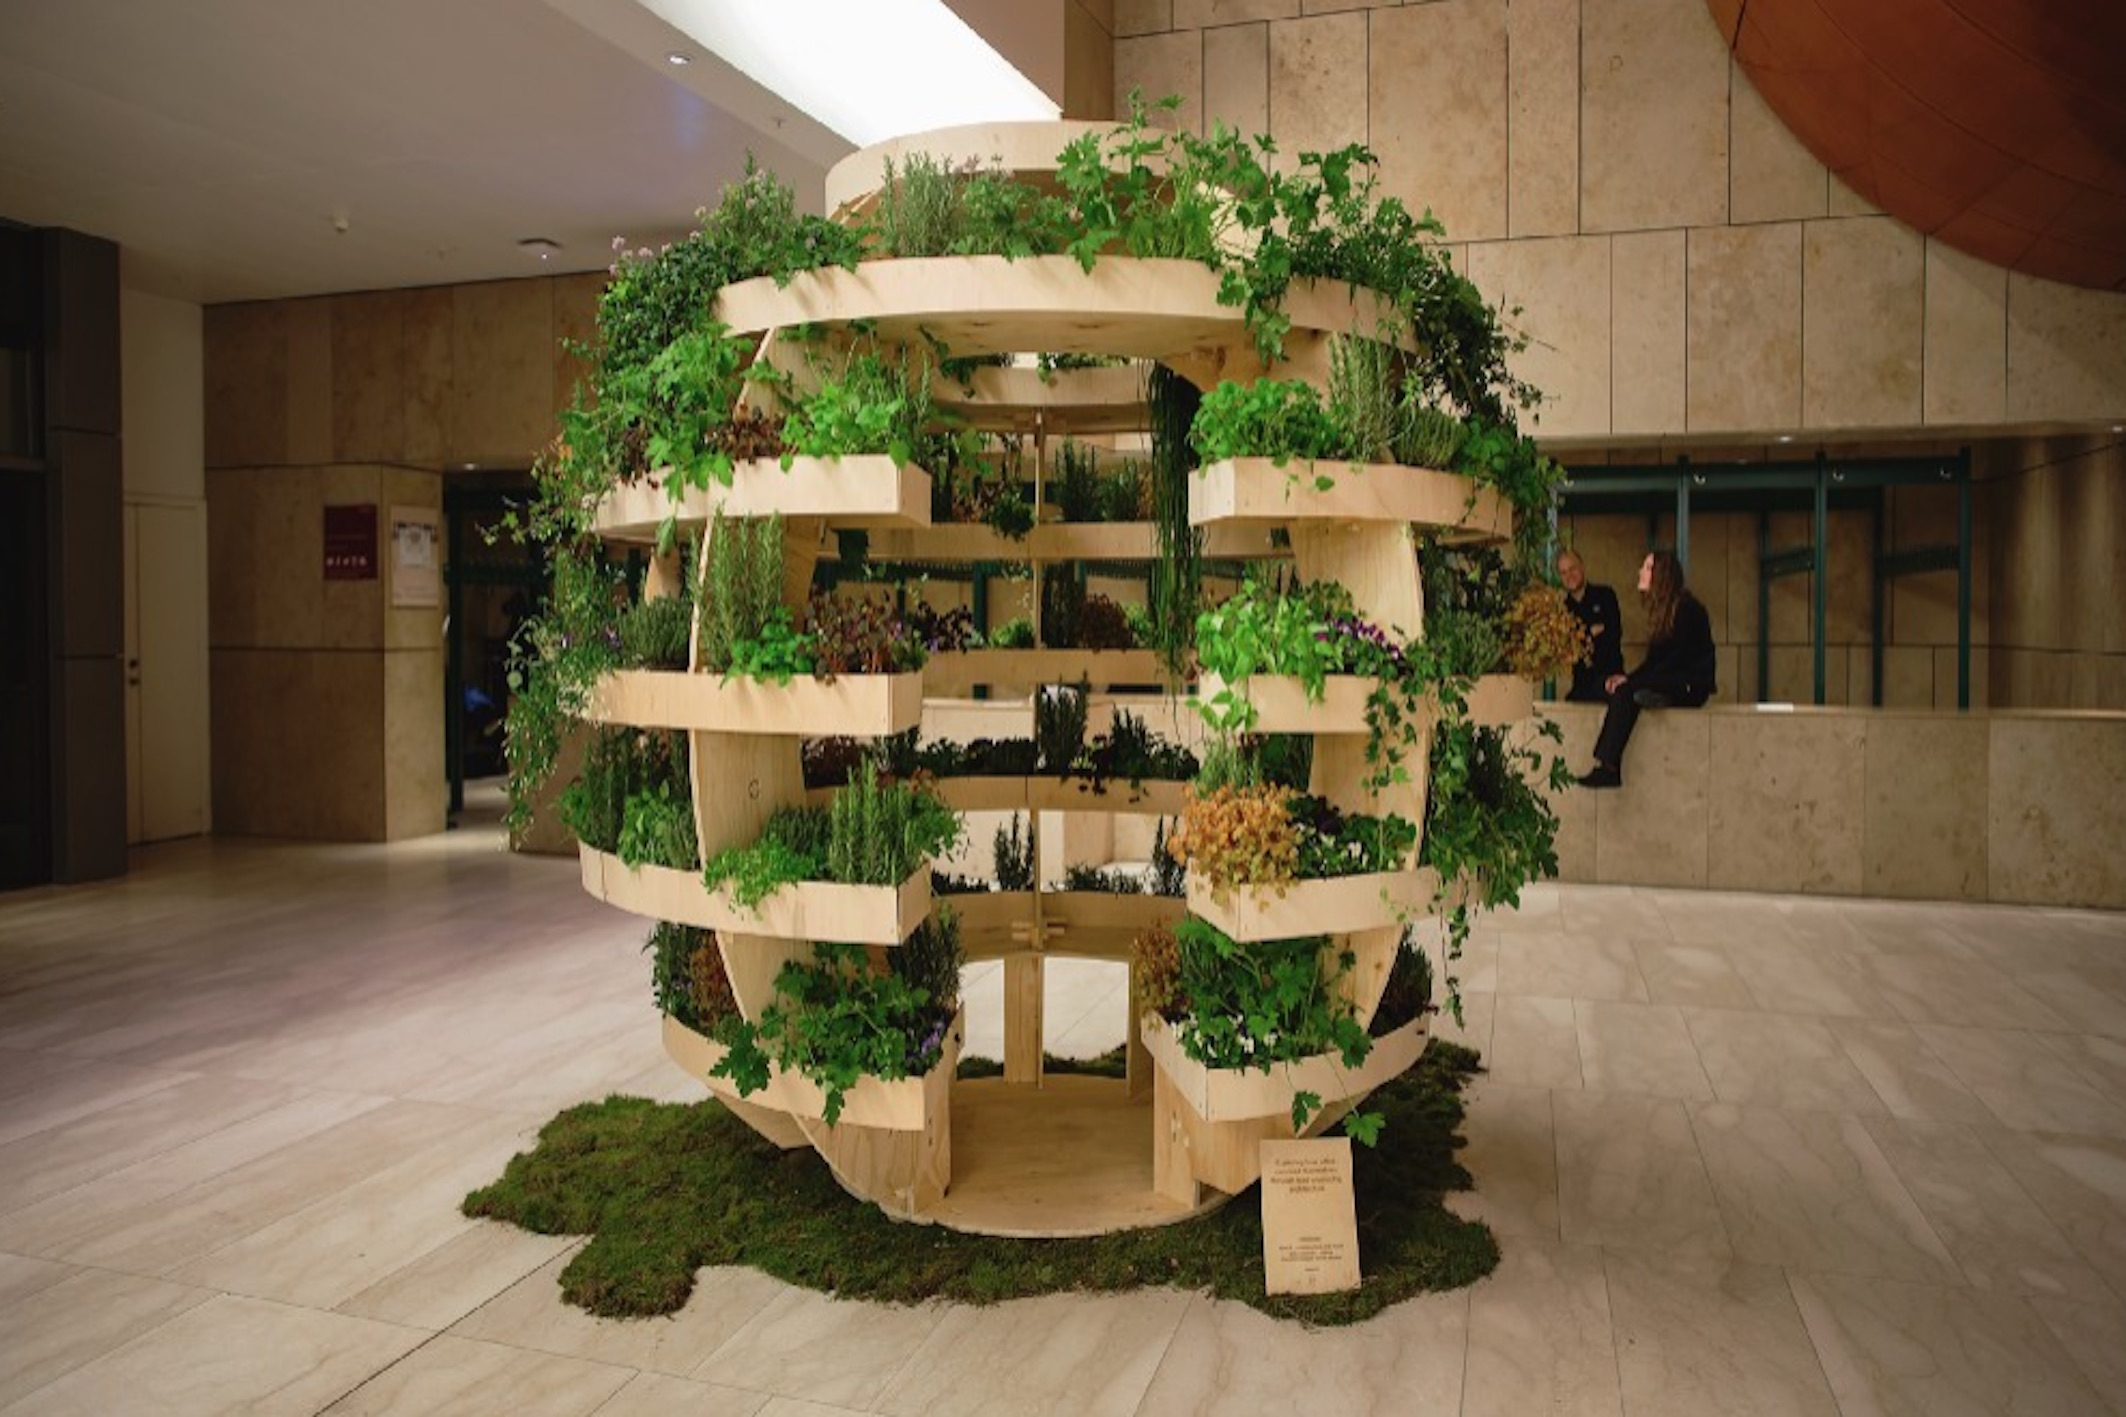 Green Homes Plans Ikea Garden Sphere Free Plans For A Sustainable Garden